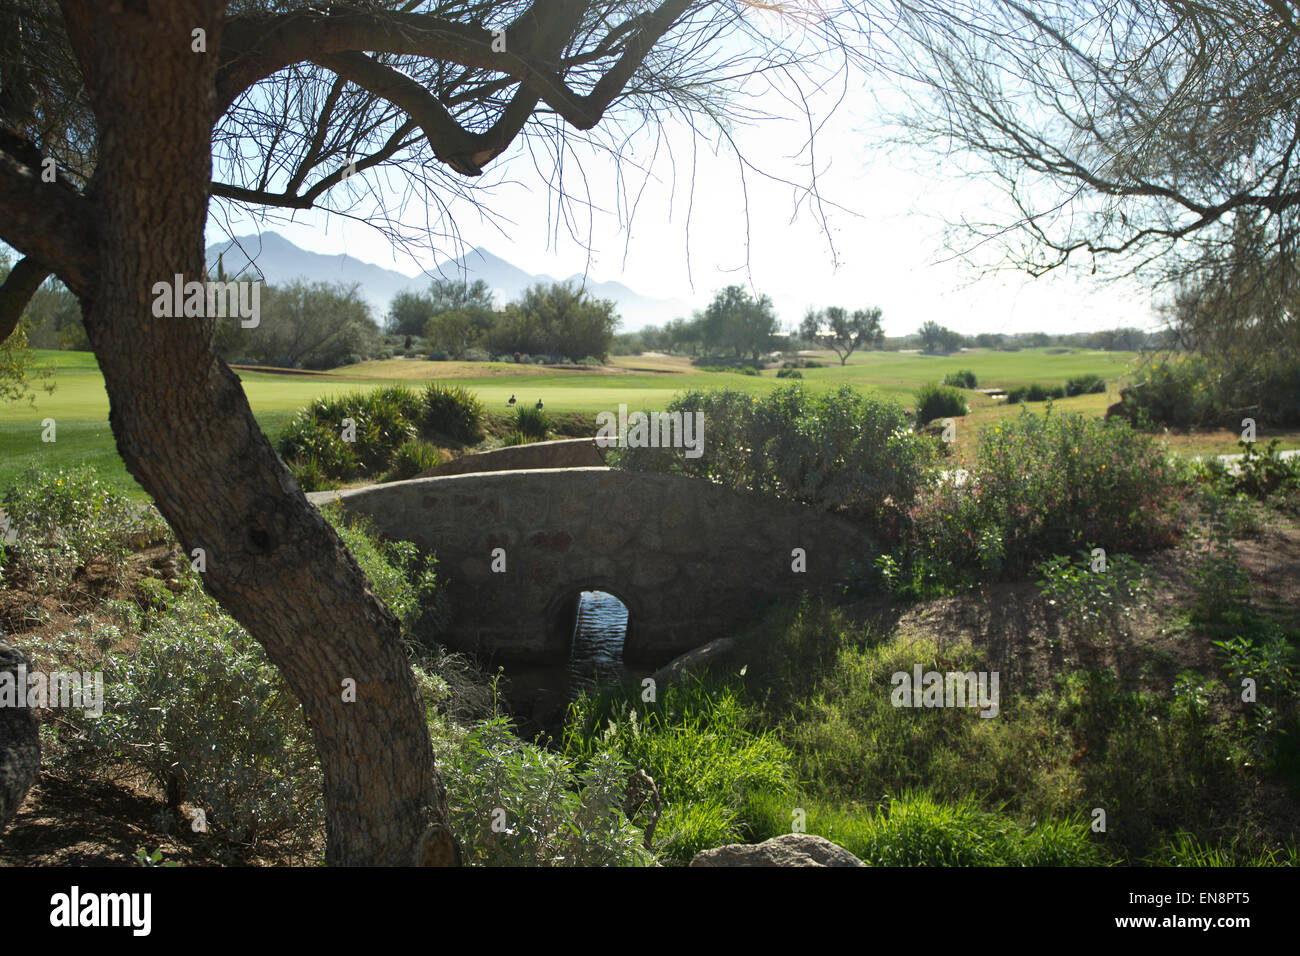 A bridge sets the scene under a mighty tree and ducks enjoying the day on a southwestern golf course - Stock Image